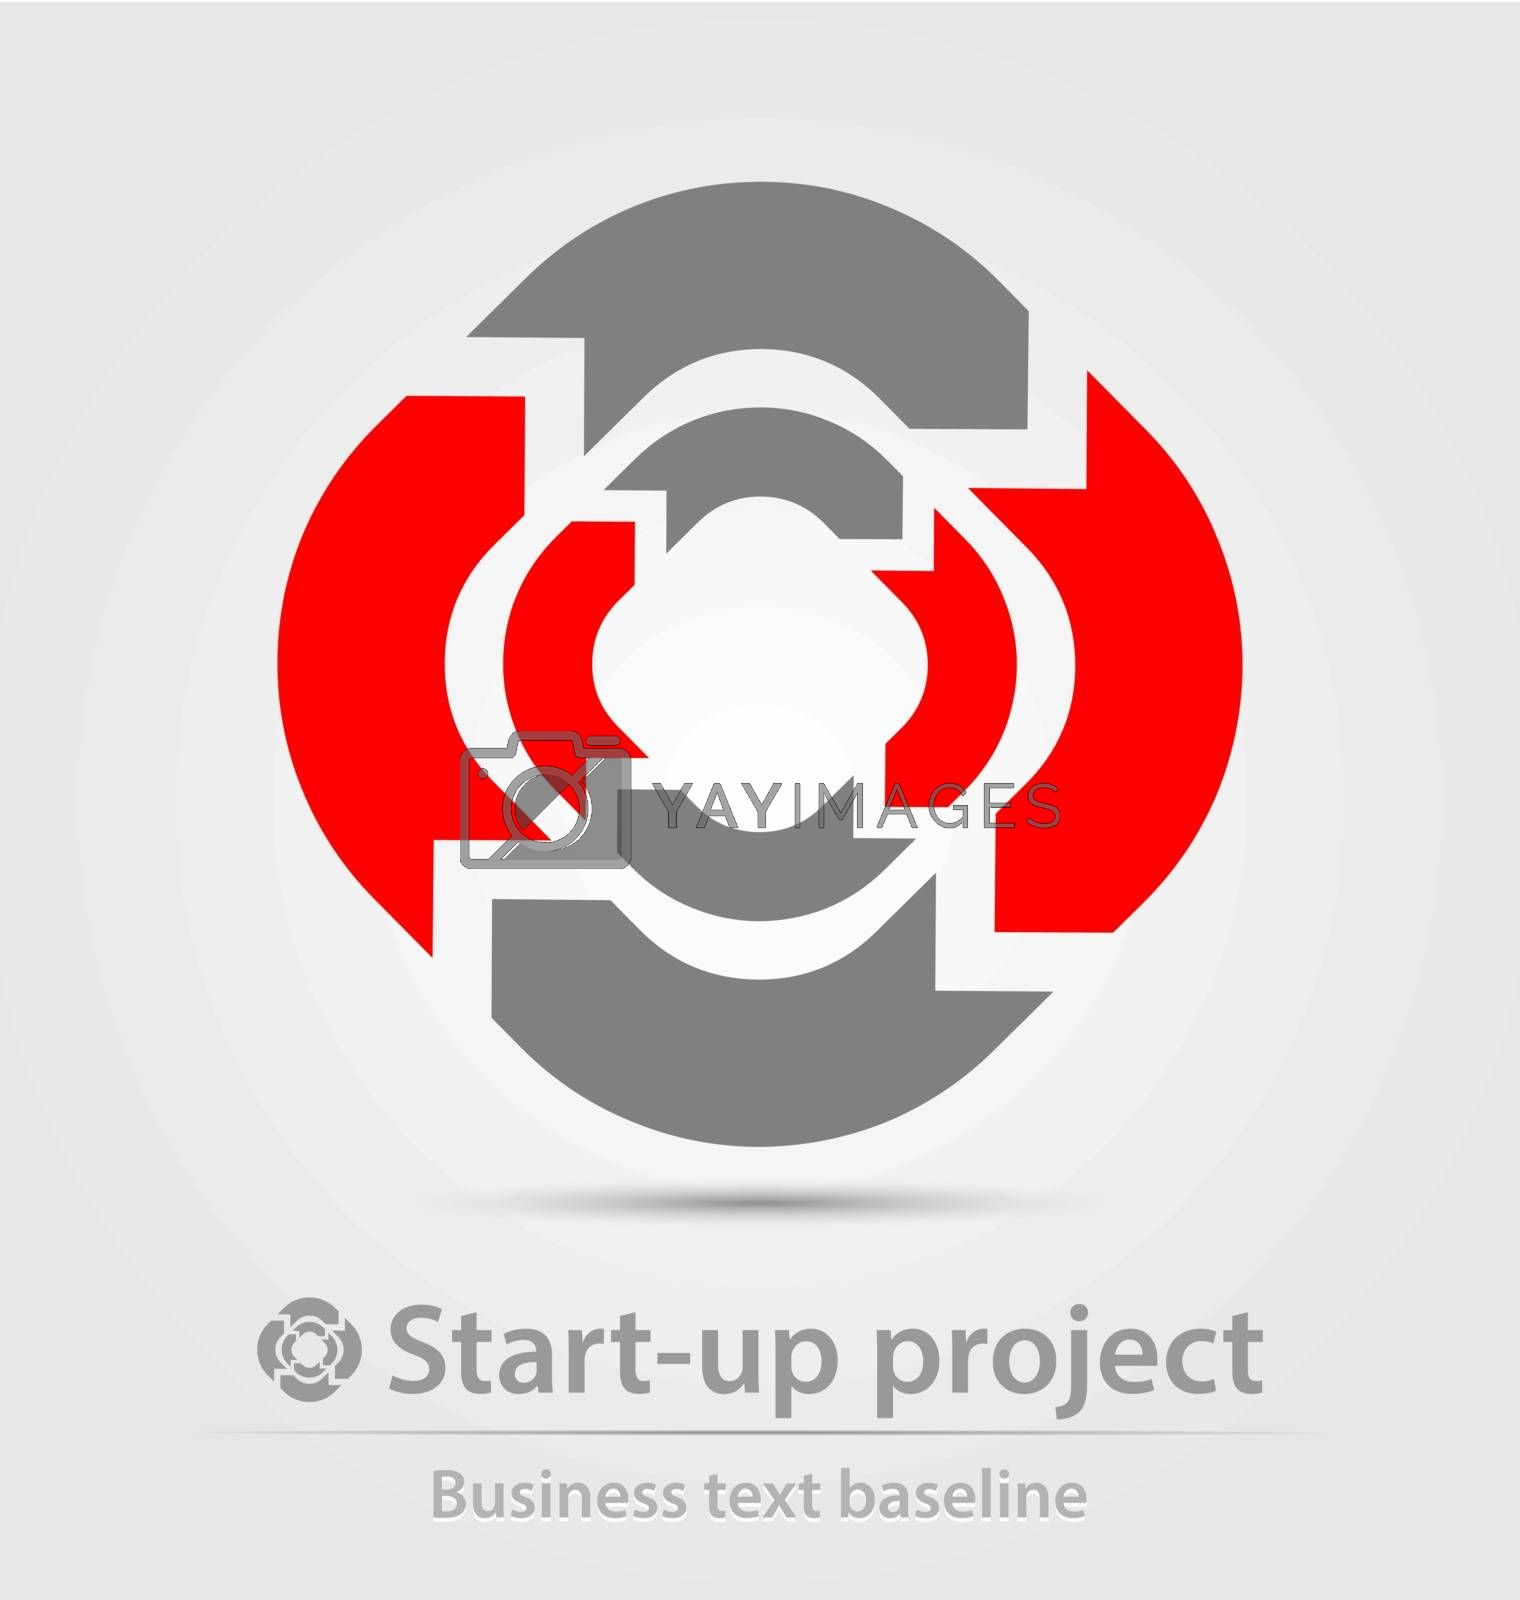 Start-up project business icon by stocklady